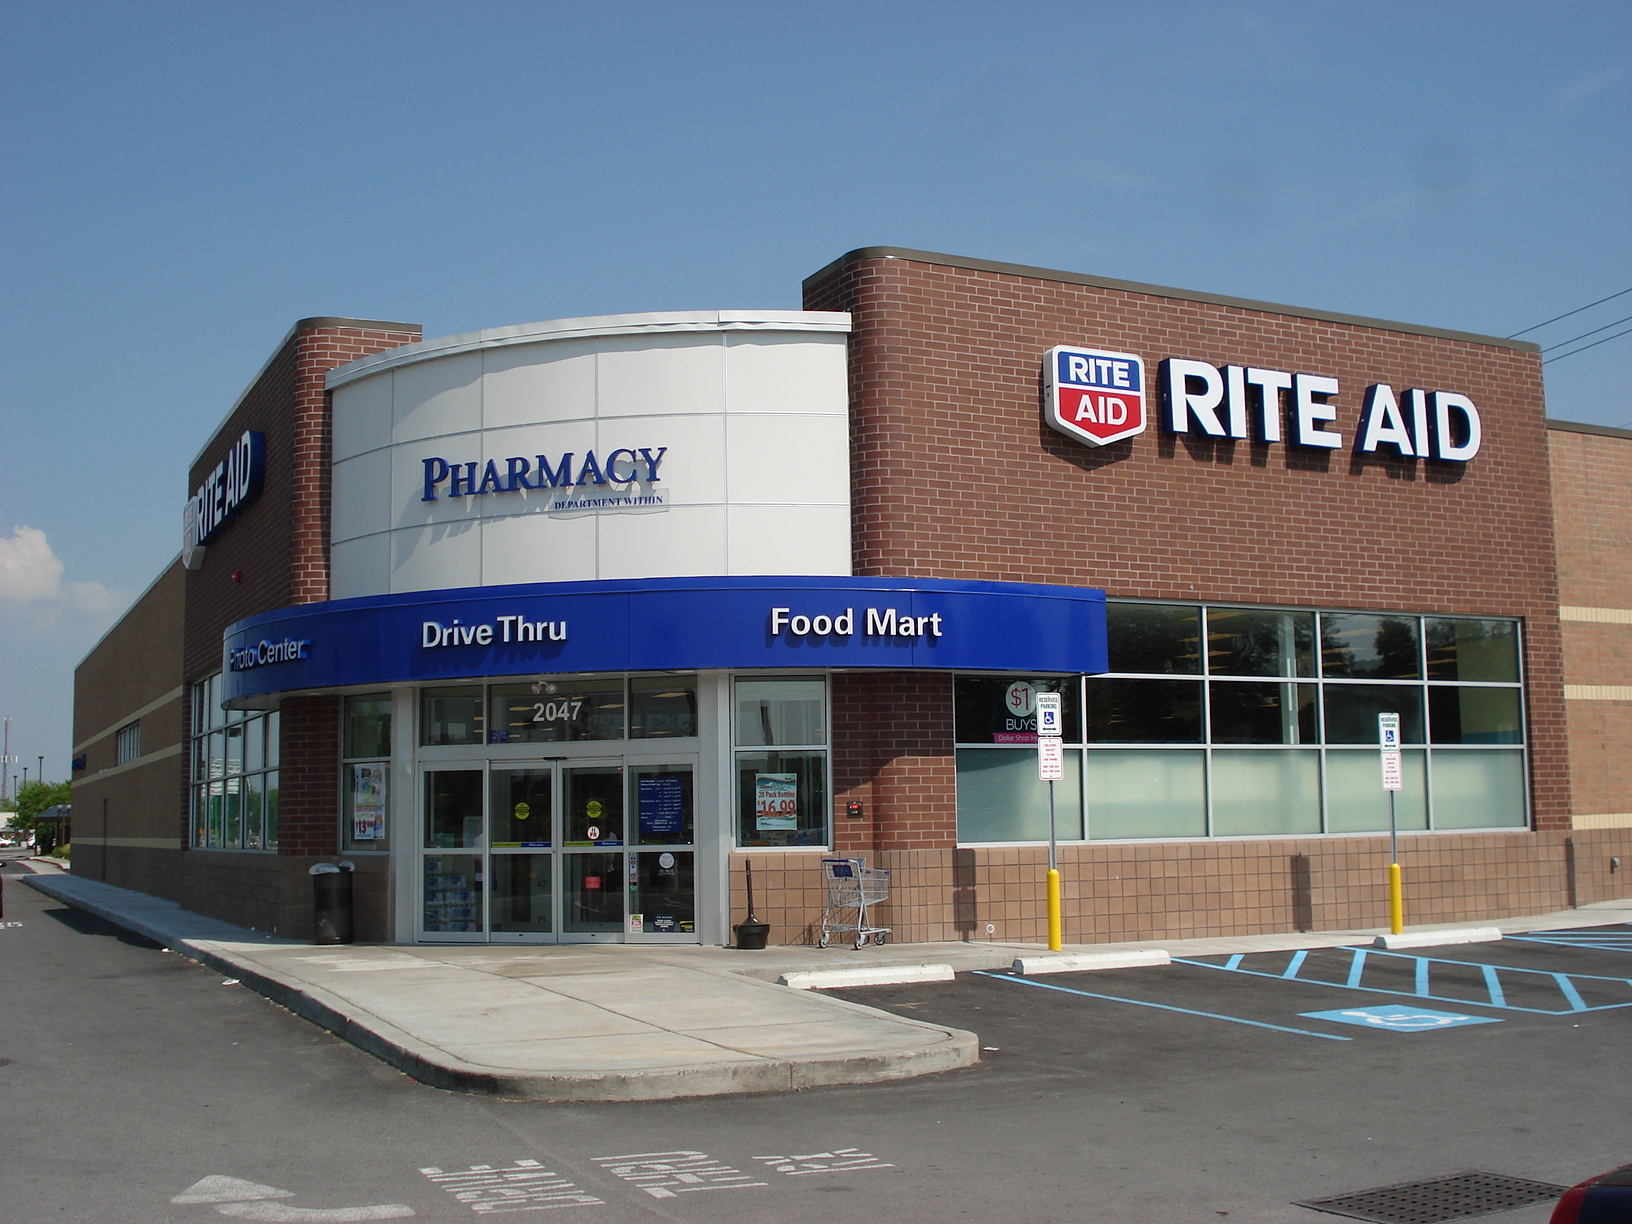 Rite aid pharmacy viagra prices